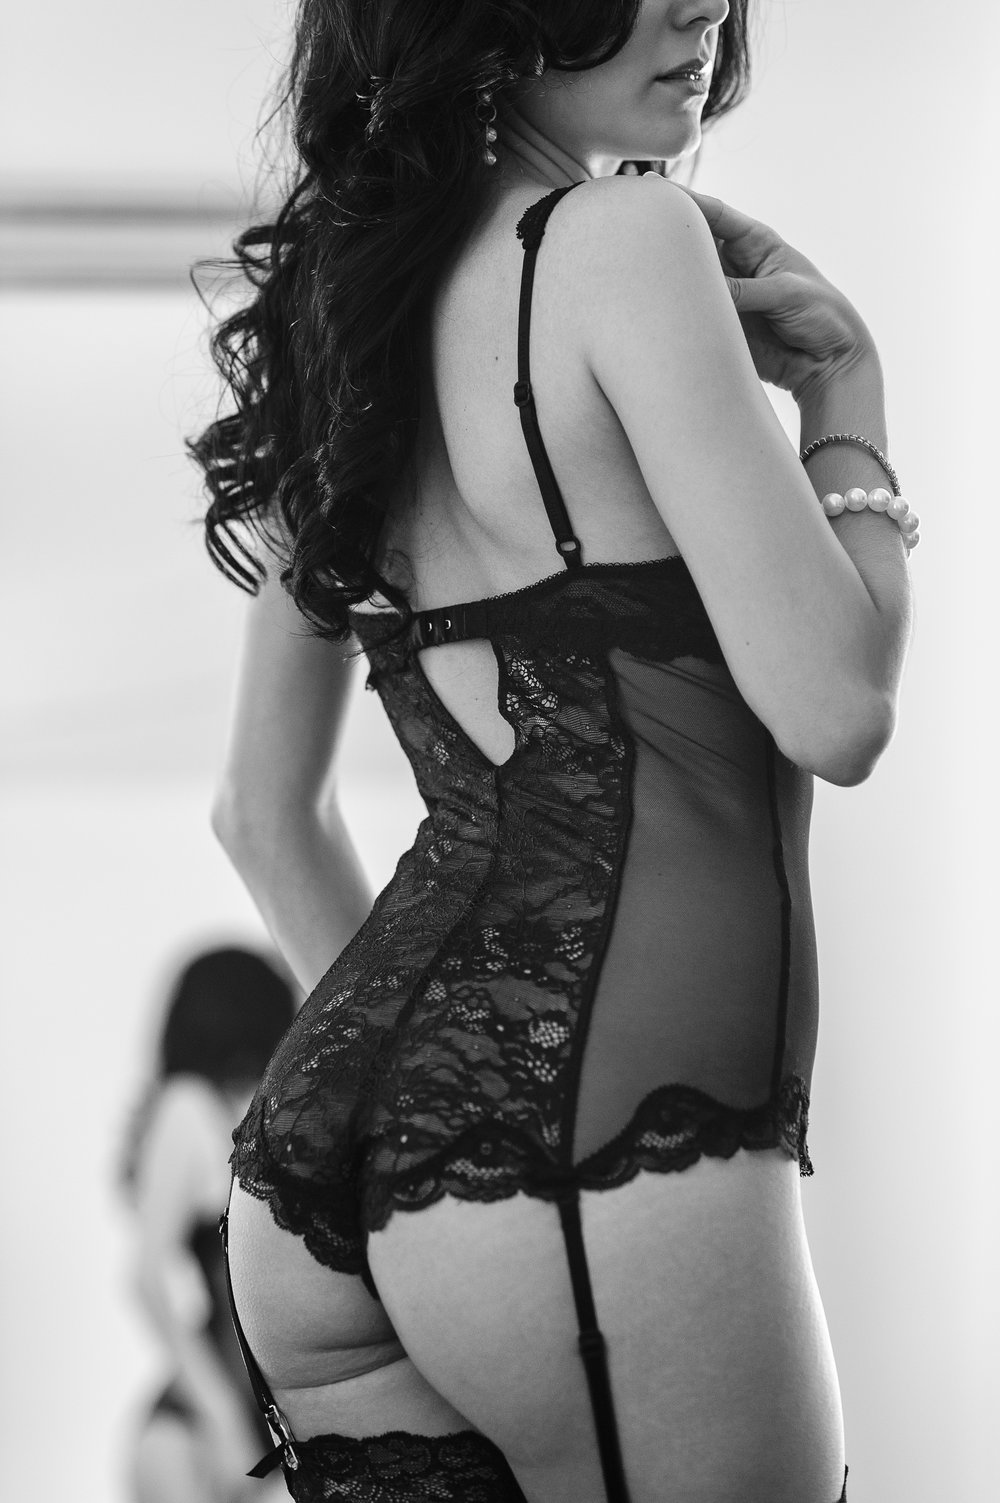 Woman wearing black lace lingerie in boudoir pose